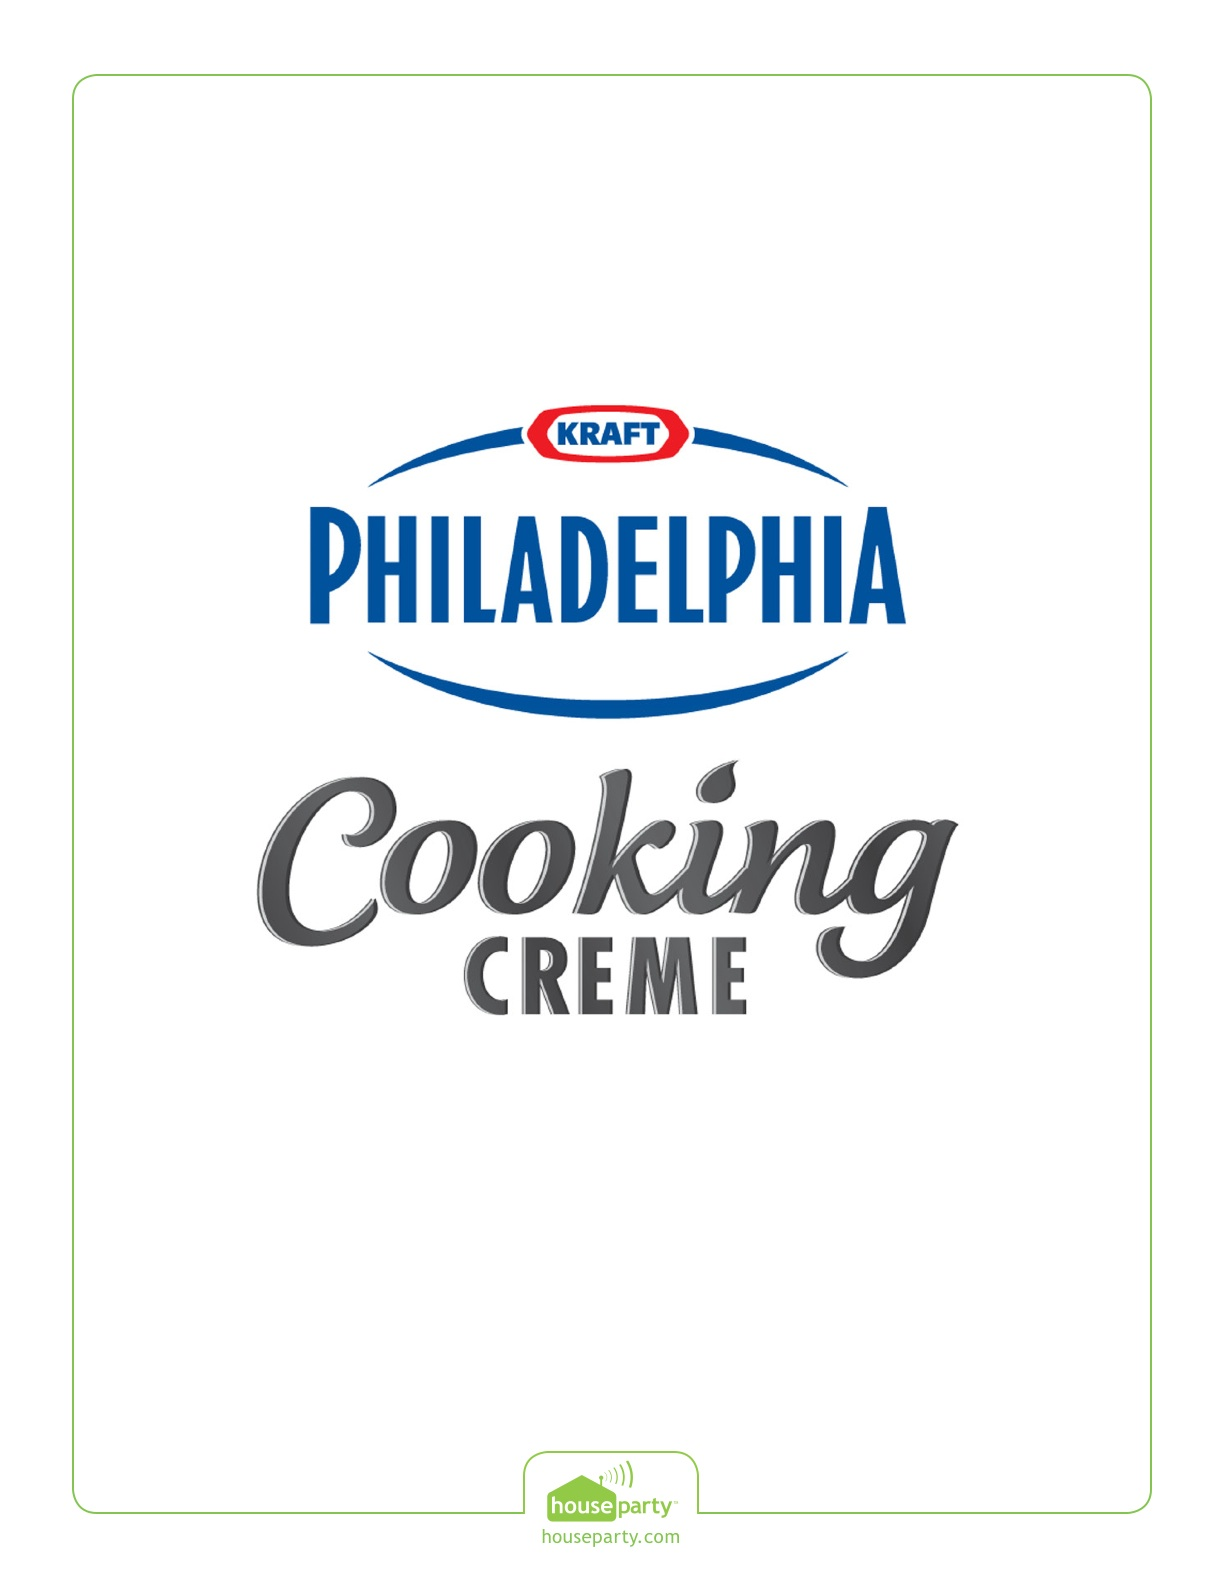 What S Your Favorite Philly Recipe Leave Me A Comment And If I Choose Yours I Ll Feature You In One Of The Posts I Write About This Celebration